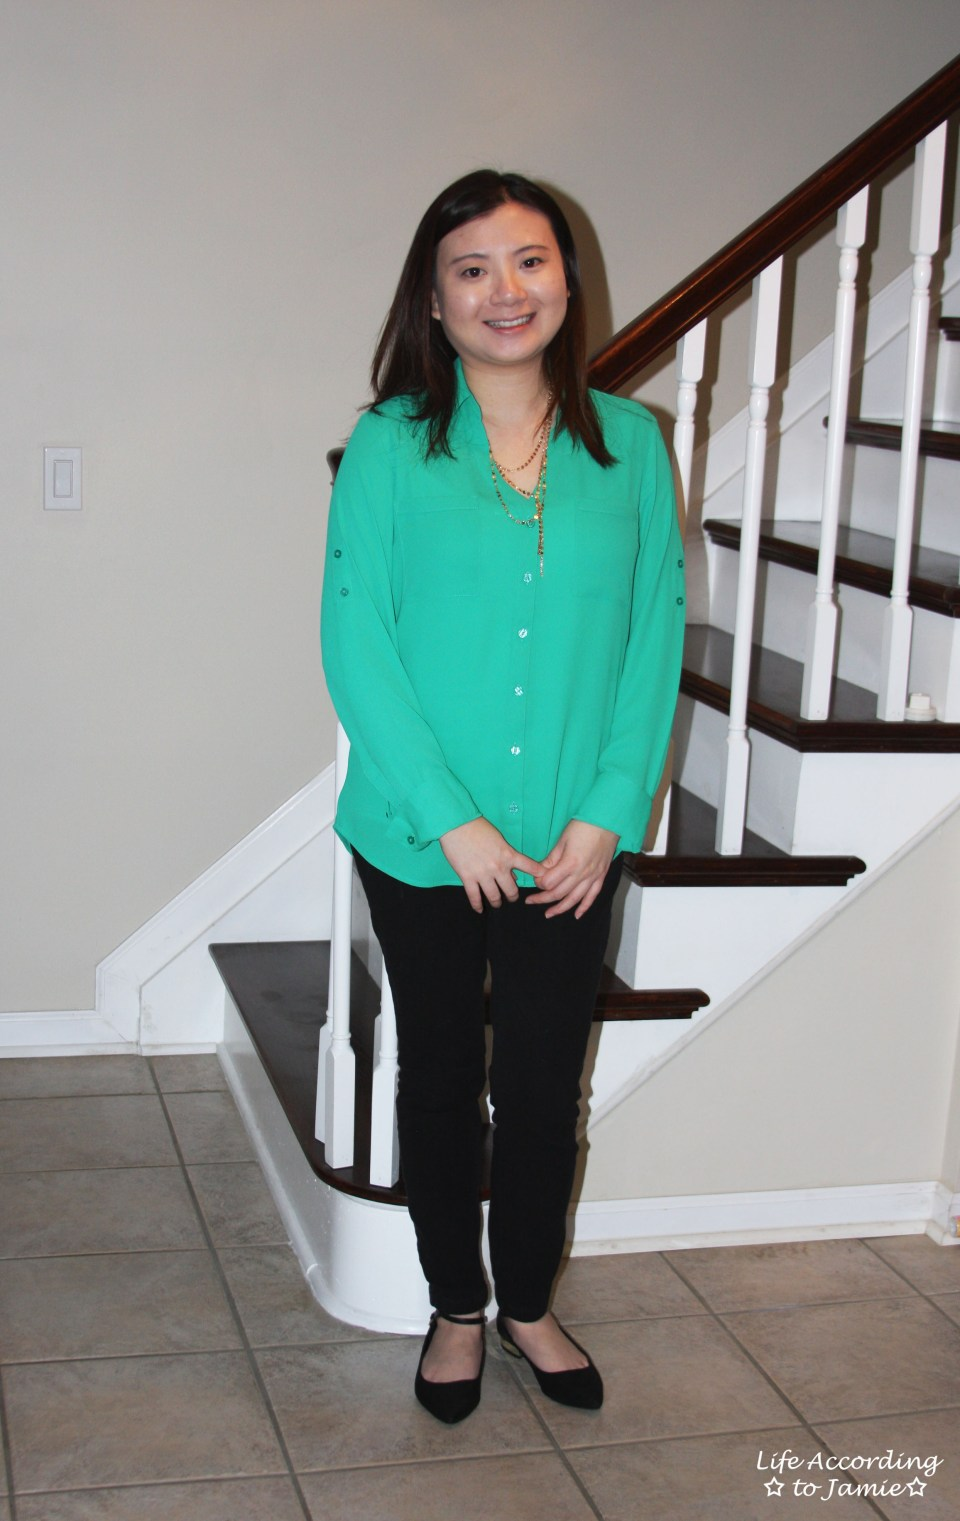 Kelly Green Blouse + Gold Layered Necklace 3